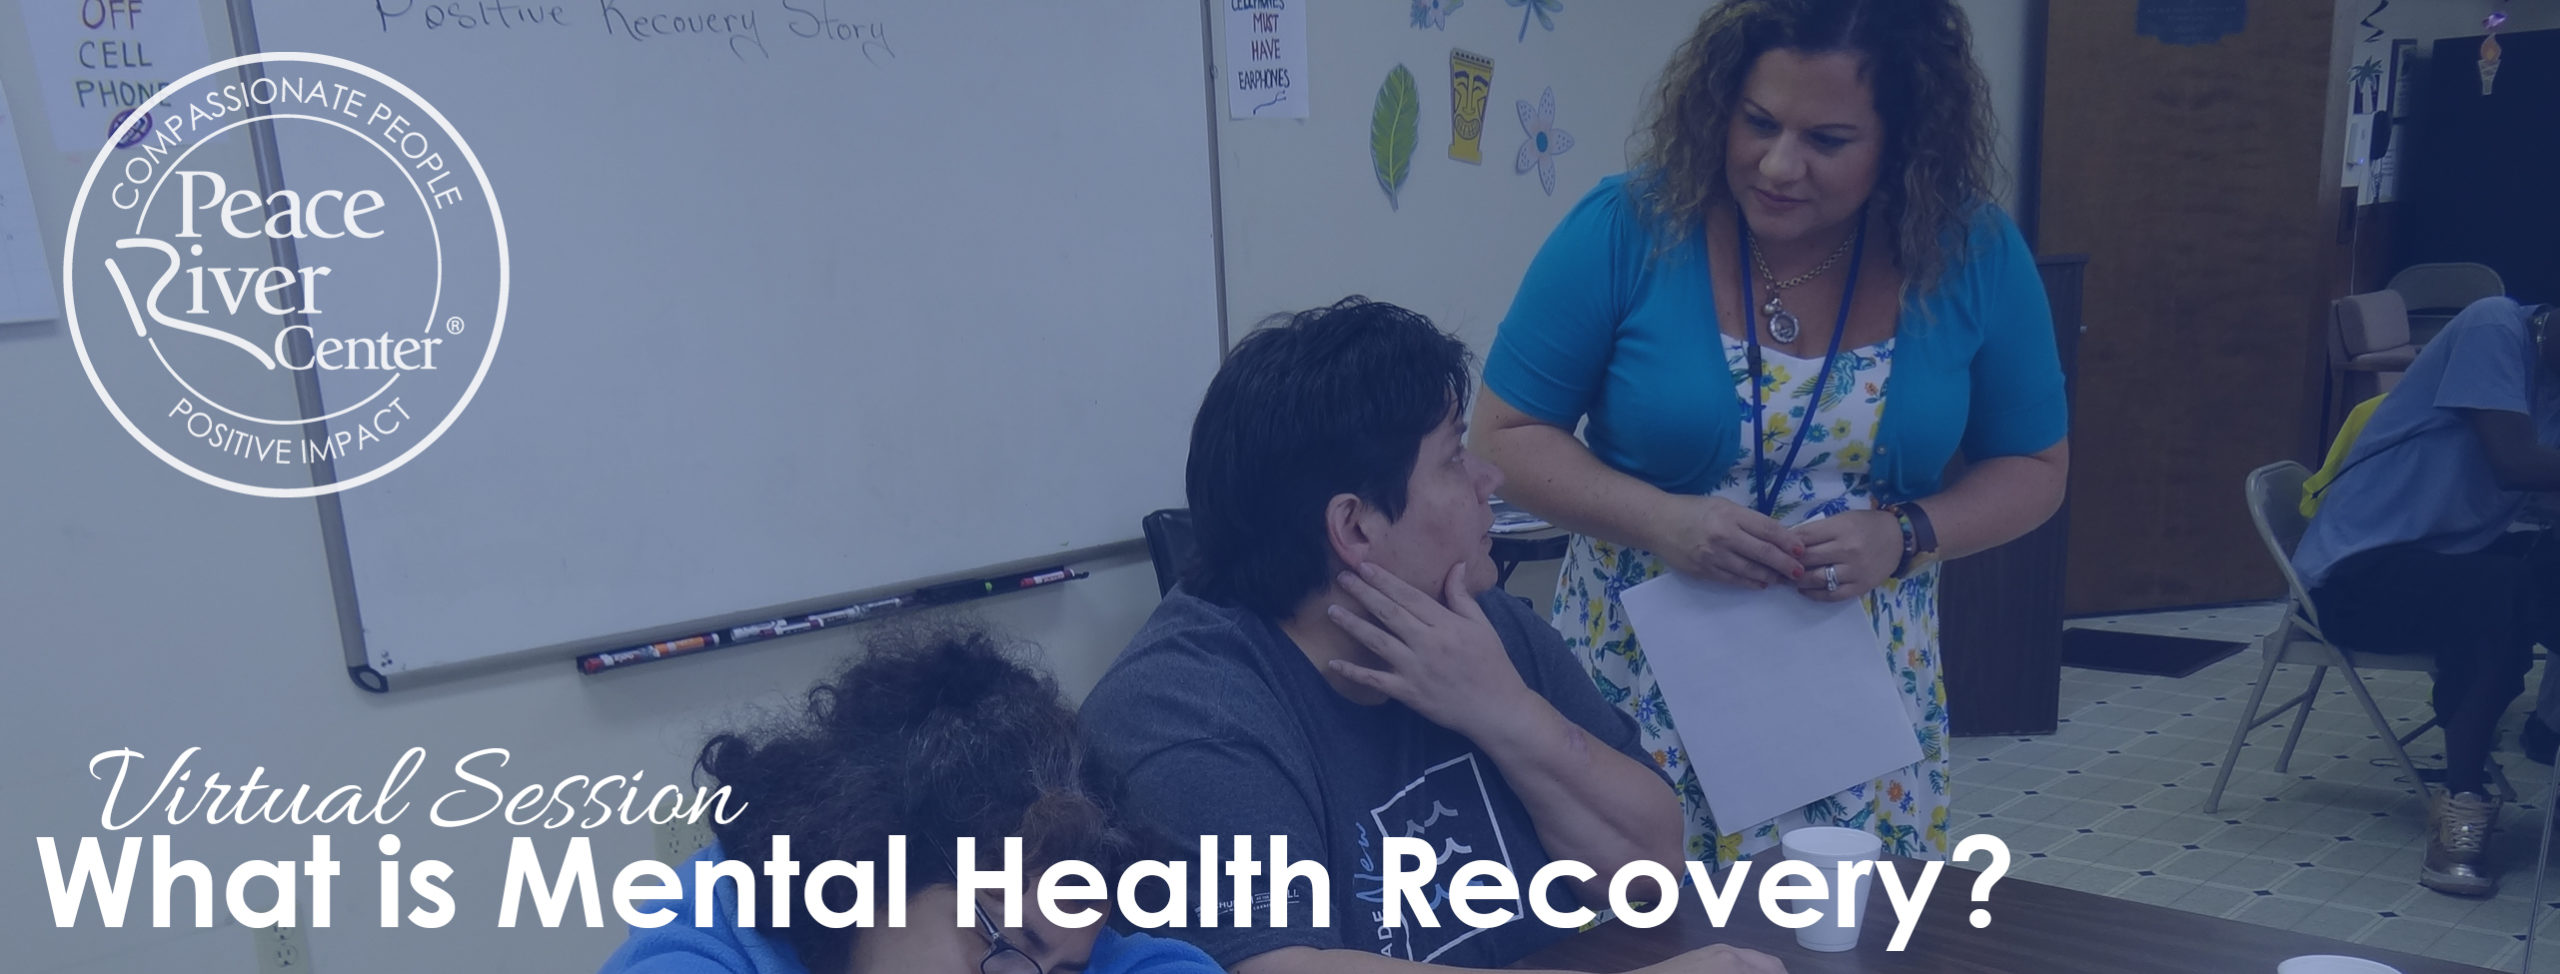 what is mental health recovery?